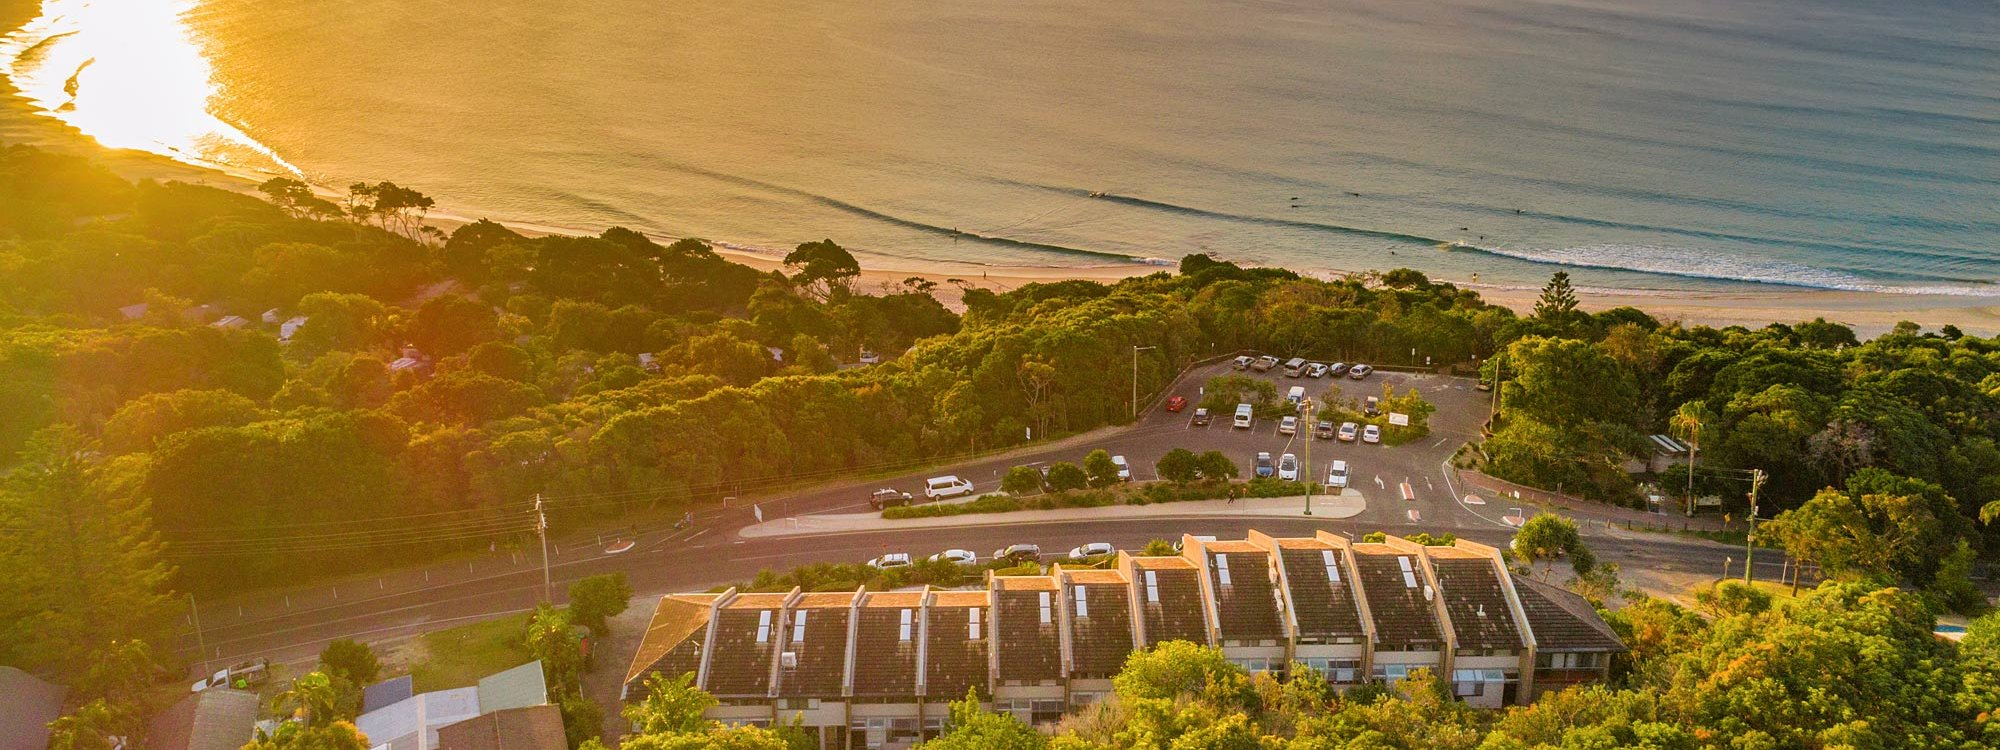 11 James Cook - Byron Bay - Aerial View North of the Bay b